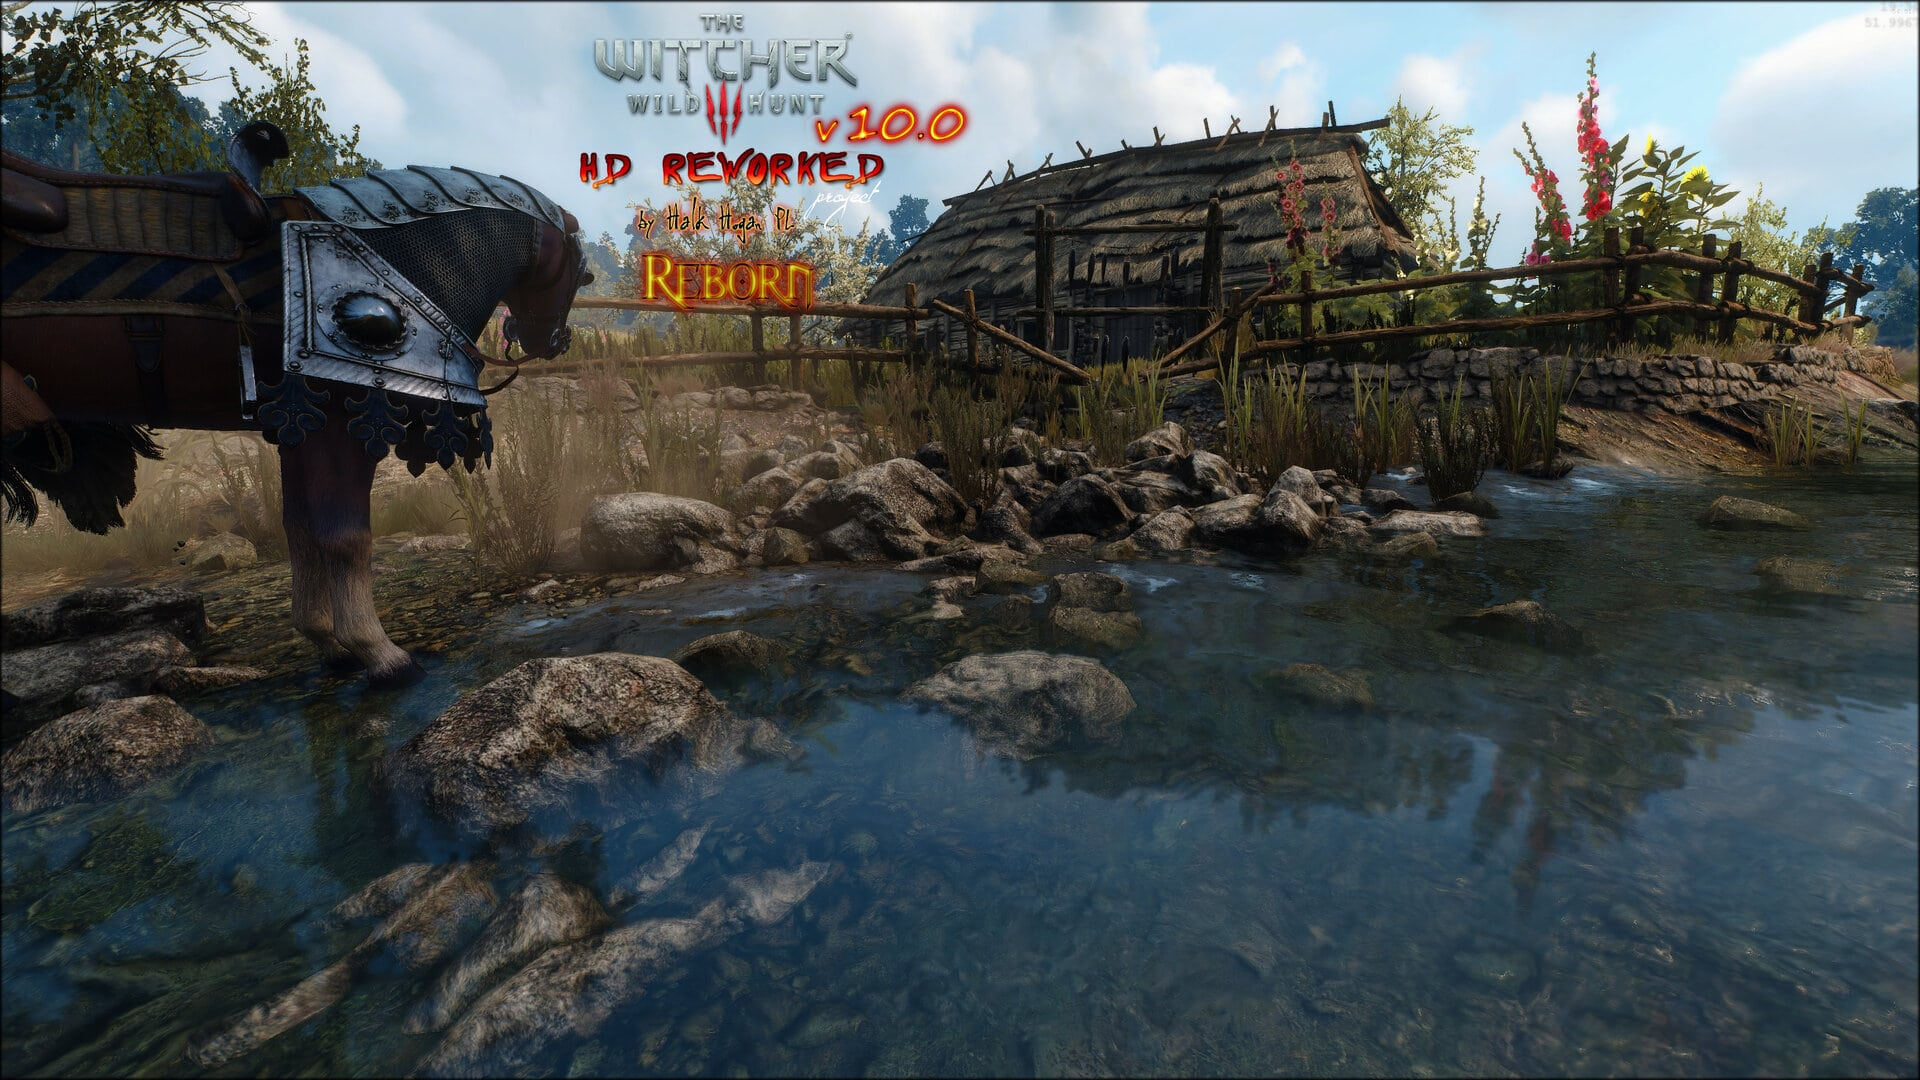 Image 10 : Vidéo : la version finale du mod HD Reworked Project pour The Witcher 3 est disponible !